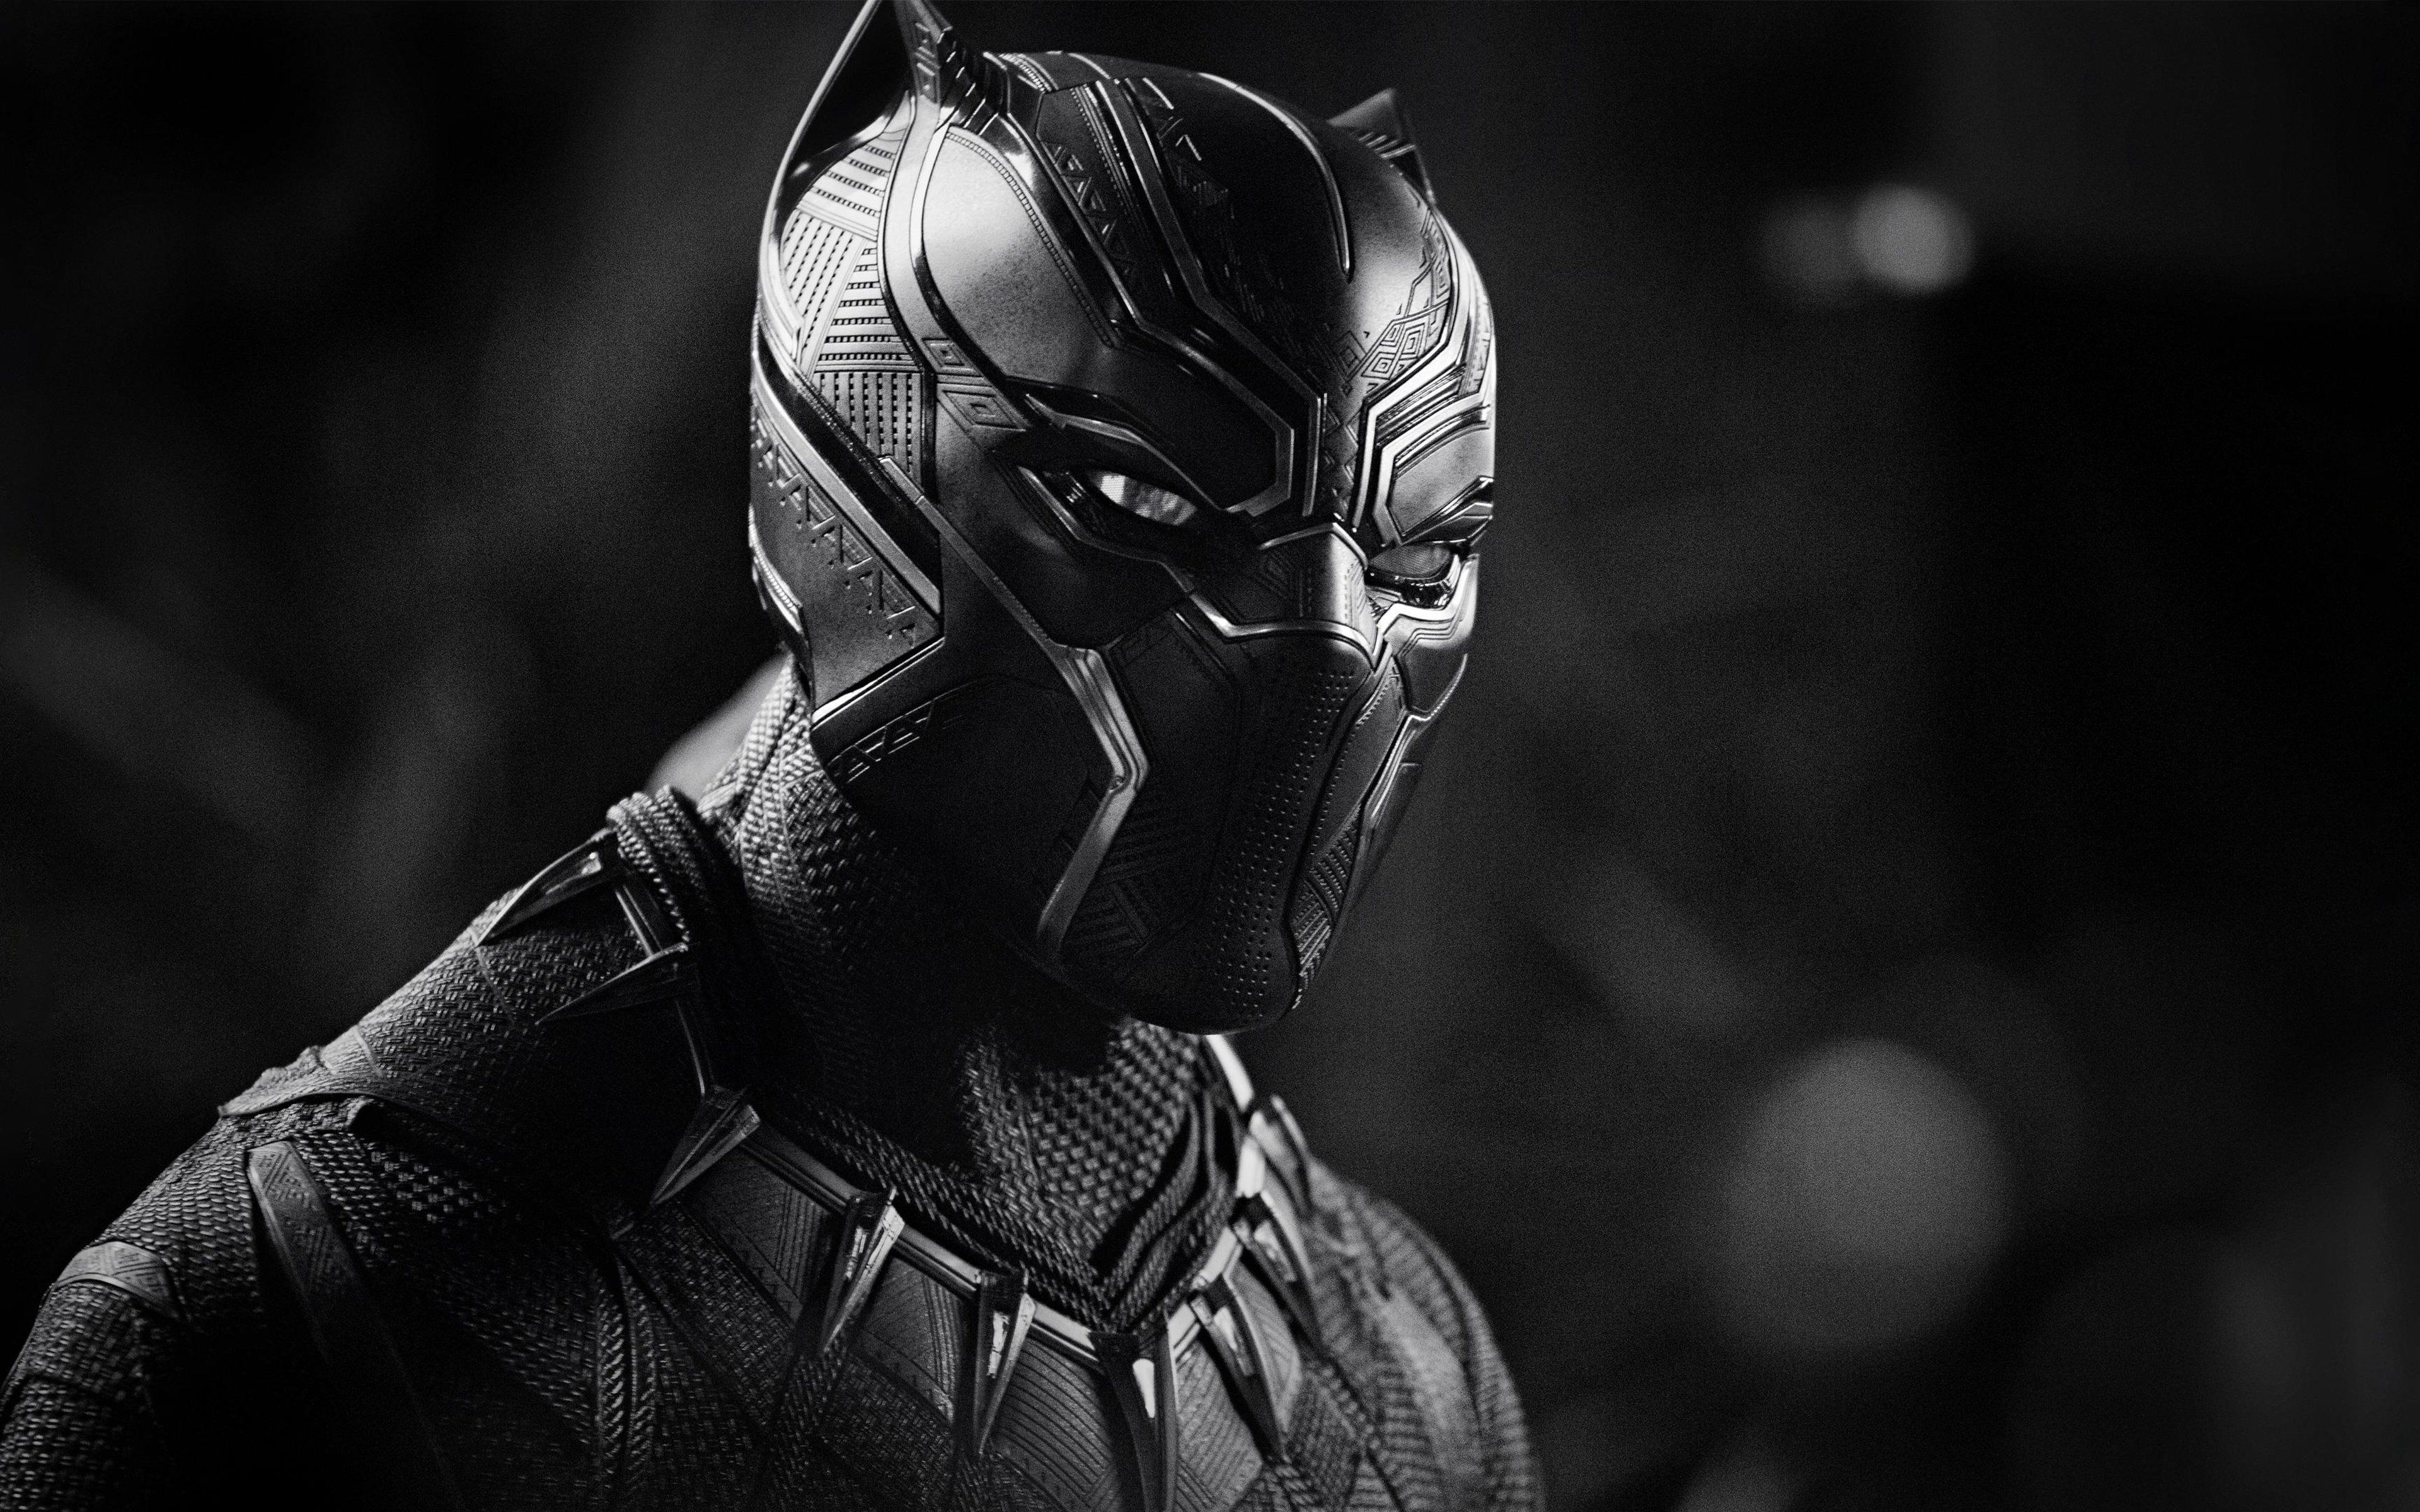 Black Panther 4k Ultra Hd Dark Wallpapers Top Free Black